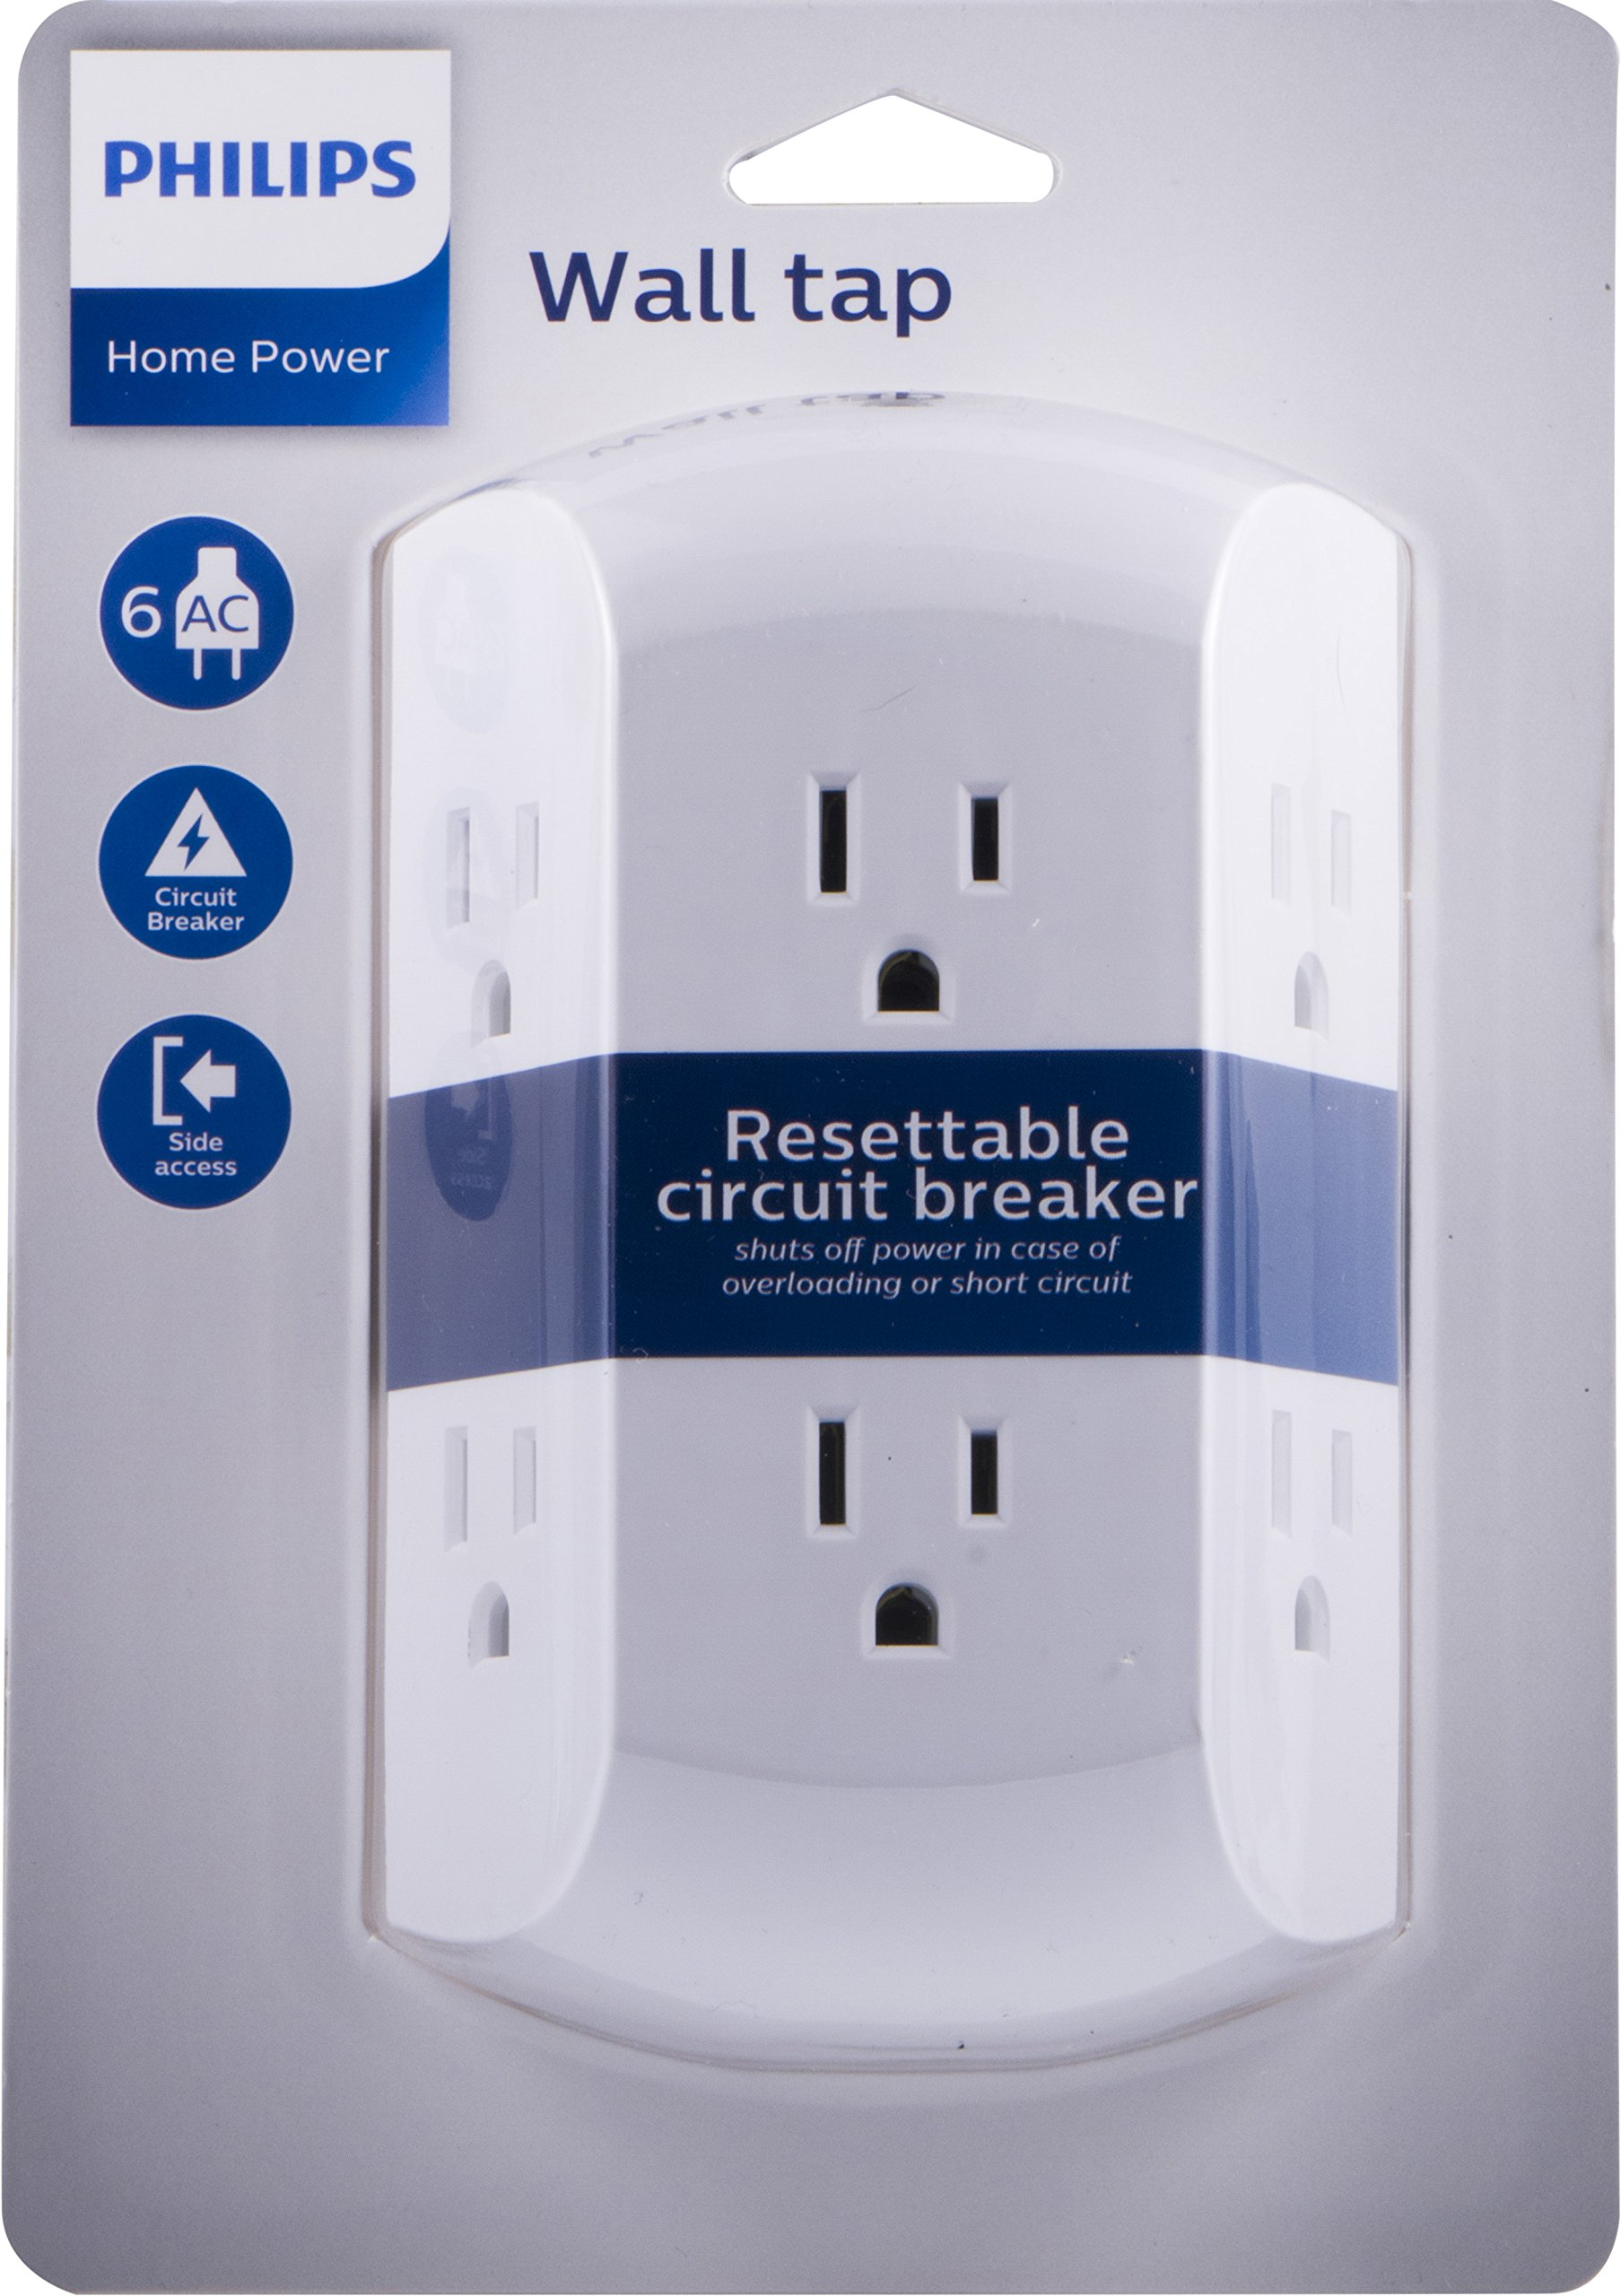 Philips 6 Outlet Wall Charger Resettable Circuit Breaker Grounded Short Multi Side Access Space Saving Design Tap White Sps1460wa 37